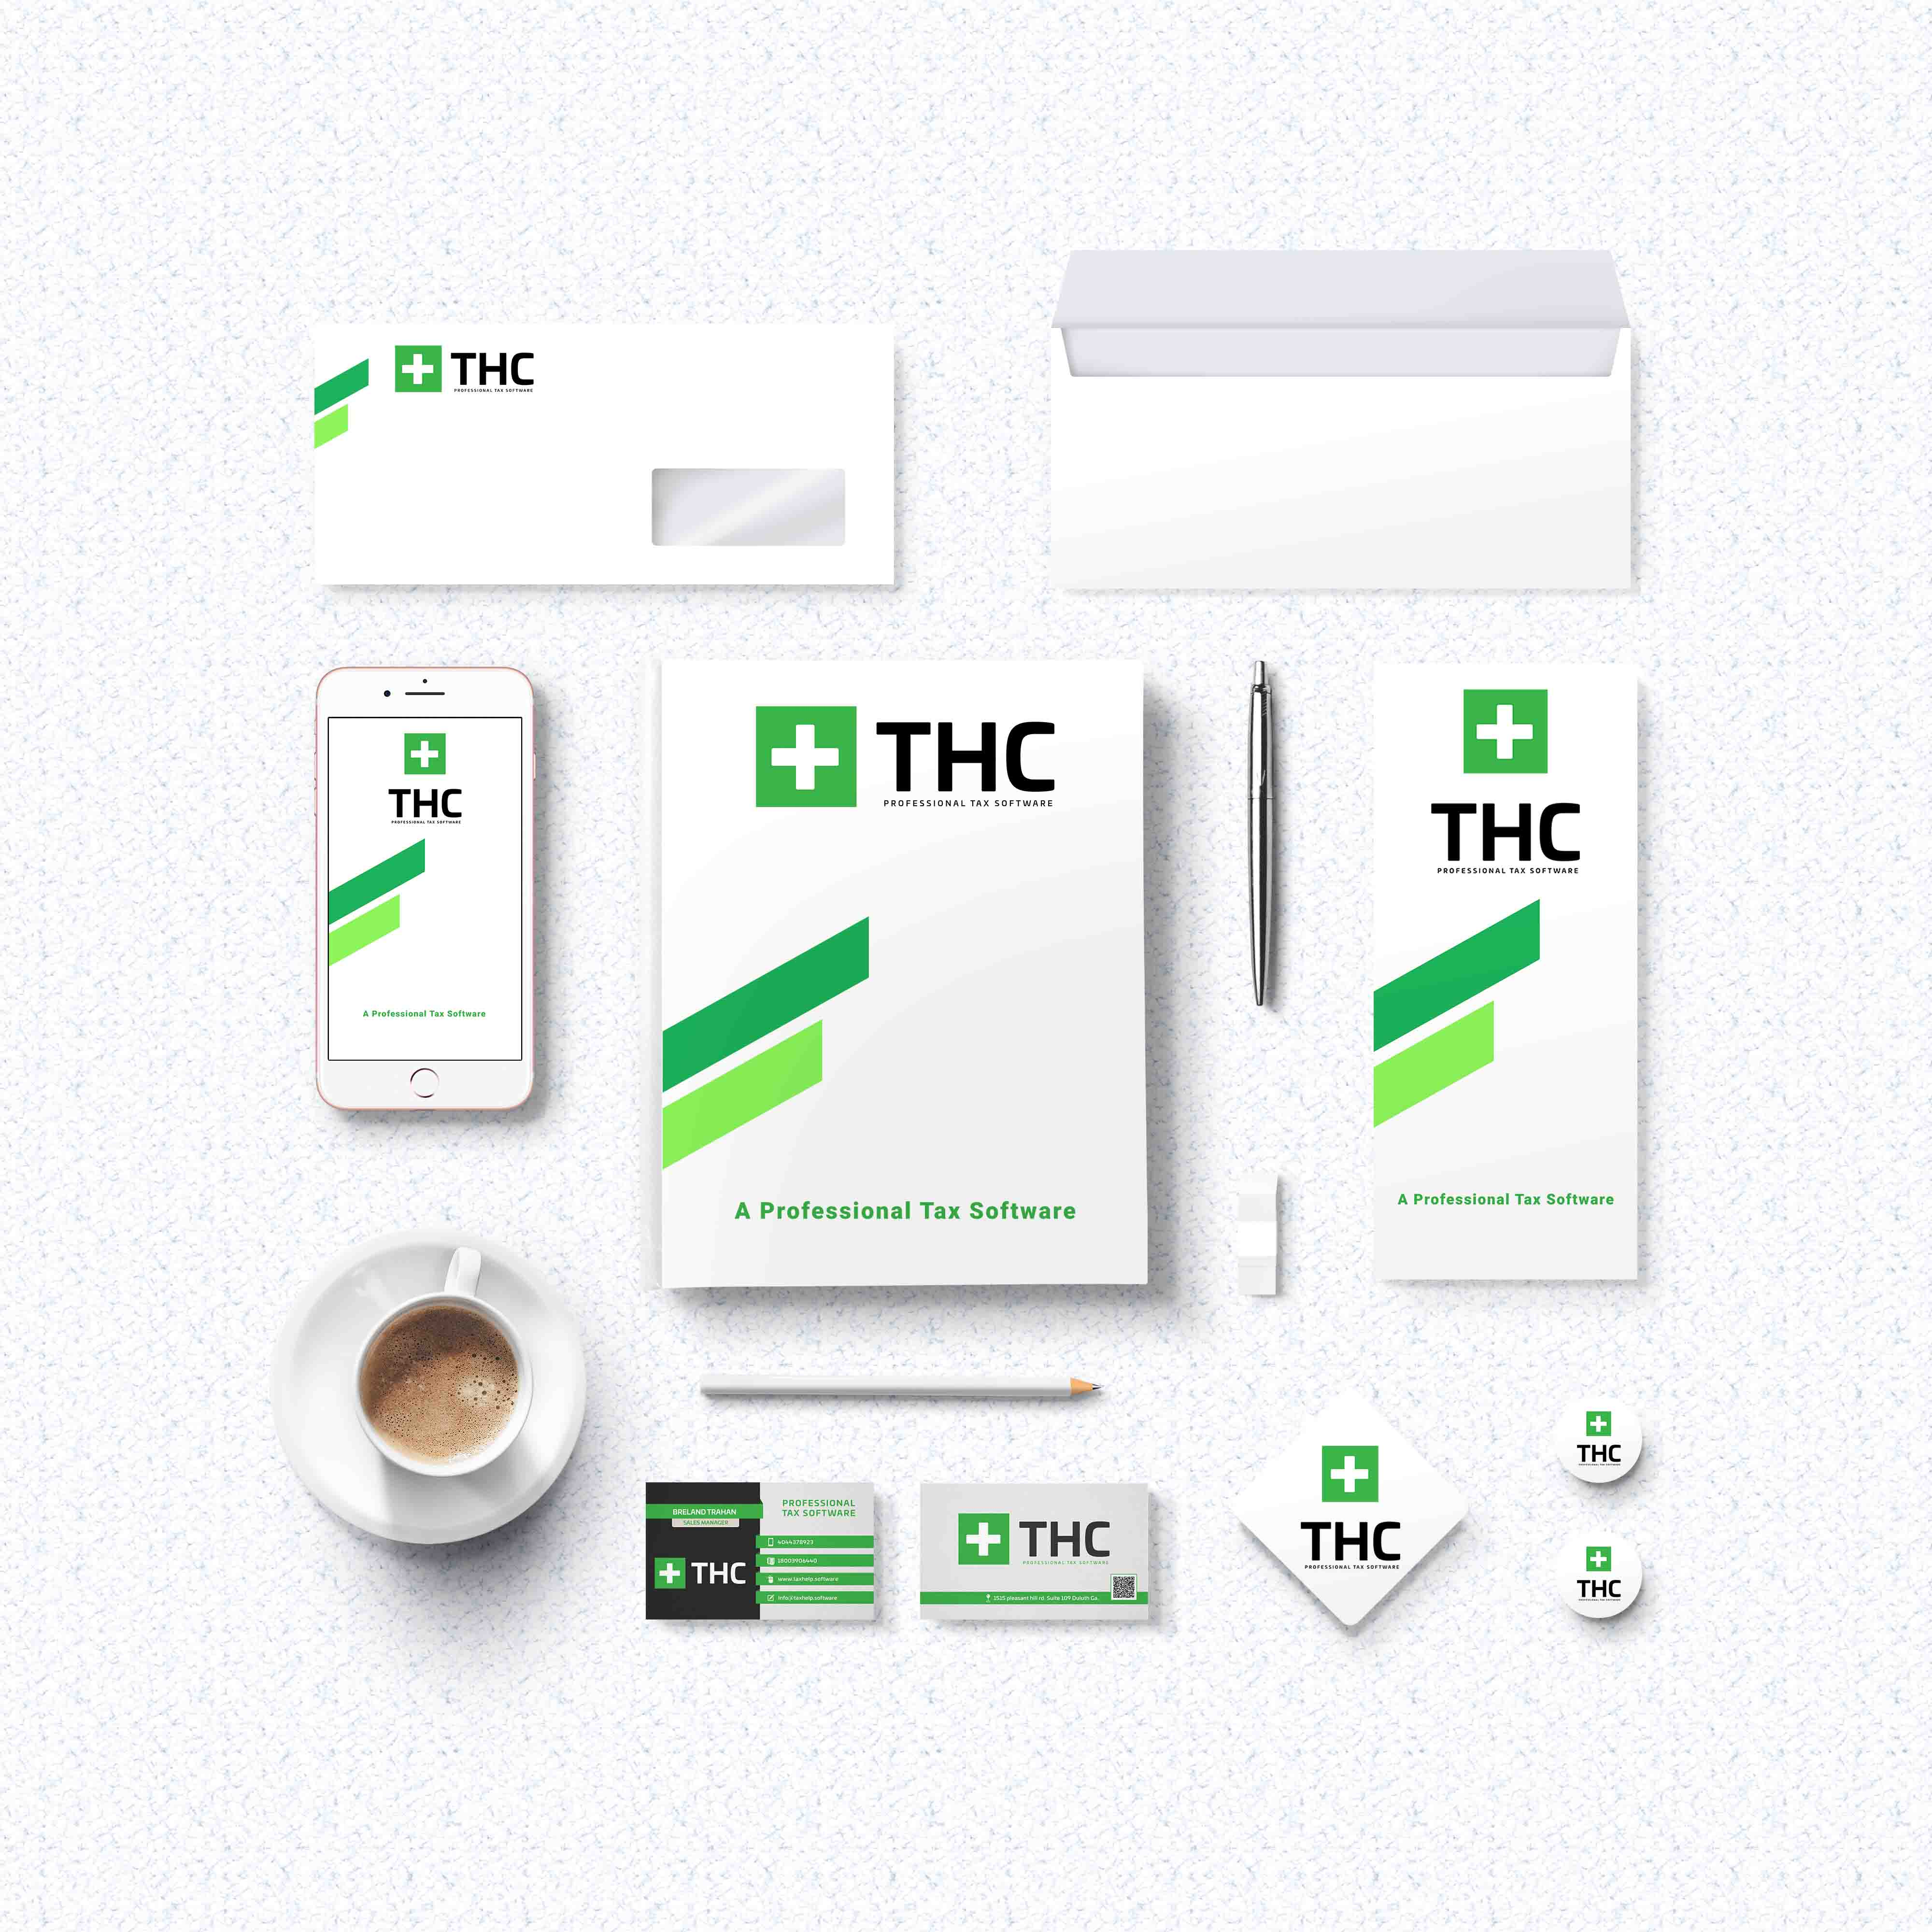 THC – PROFESSIONAL TAX SOFTWARE